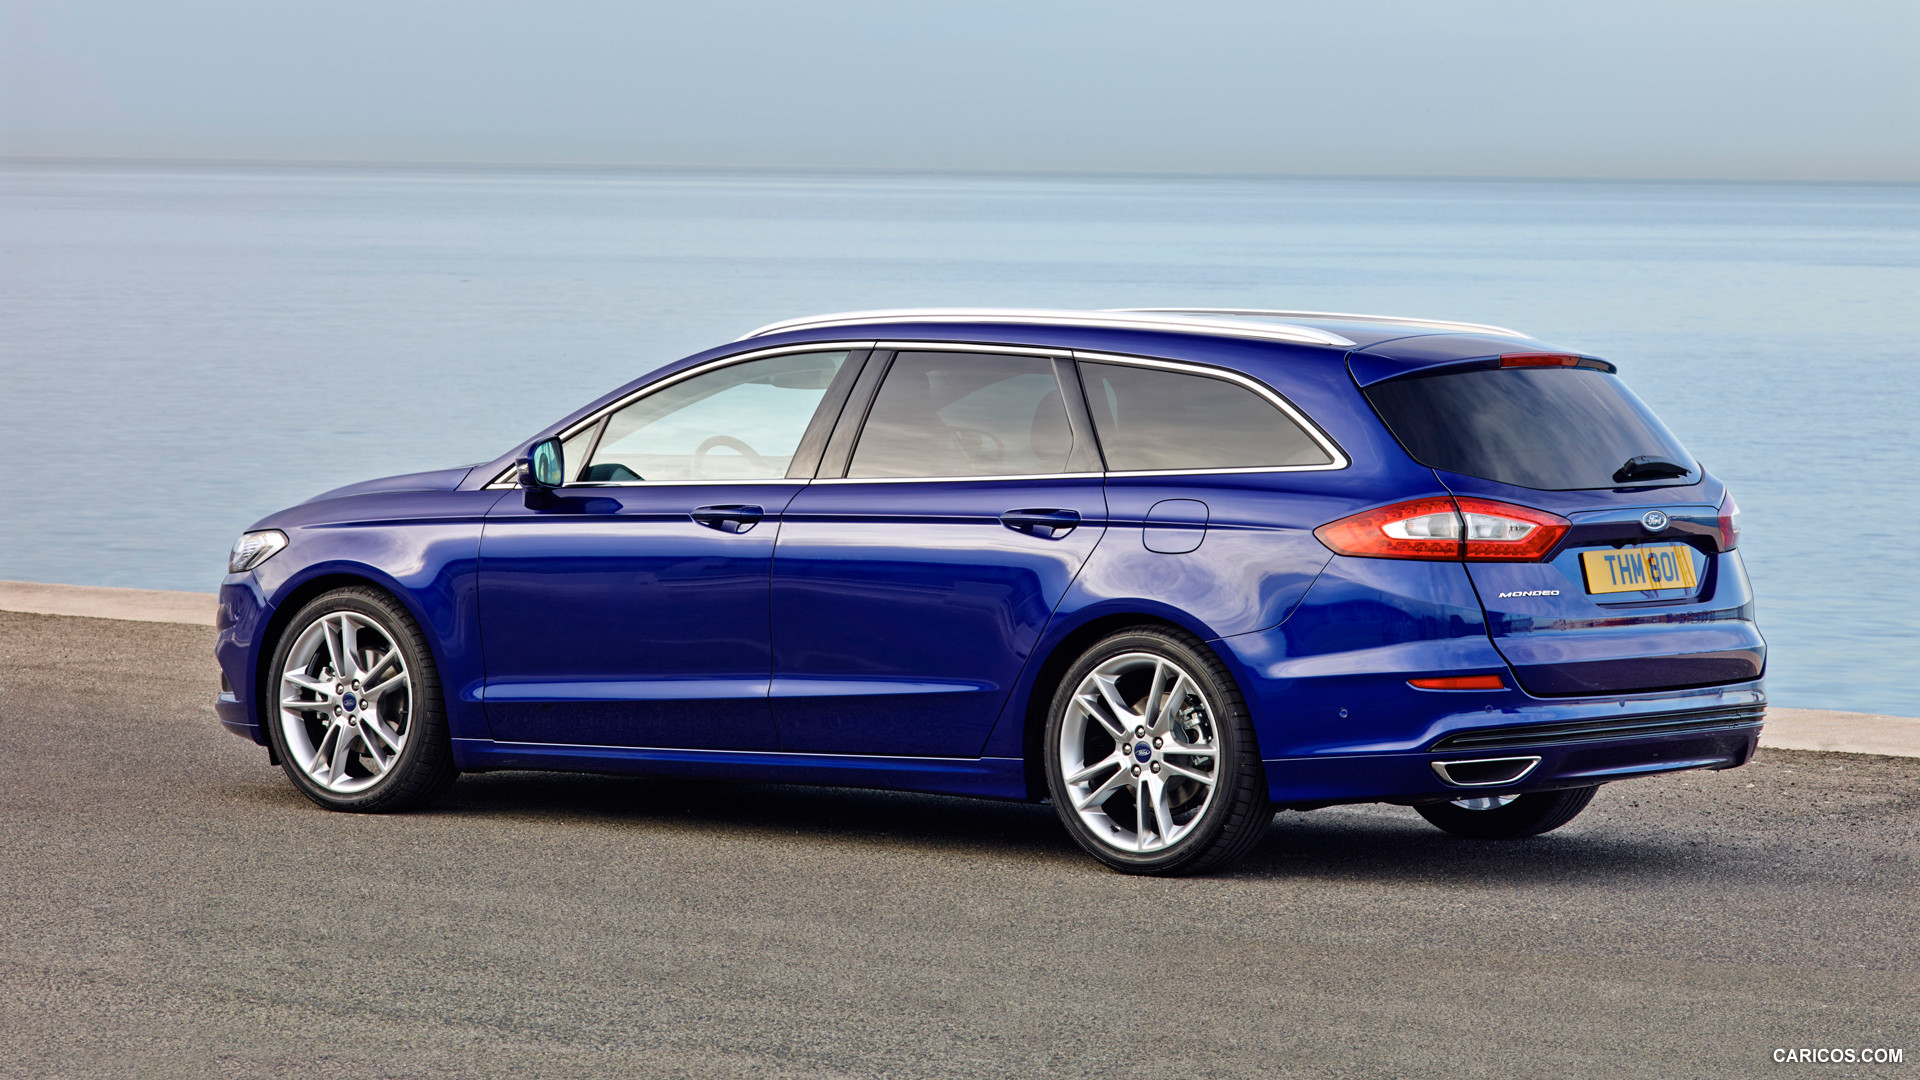 Ford Mondeo Wagon Photos Photogallery With 63 Pics